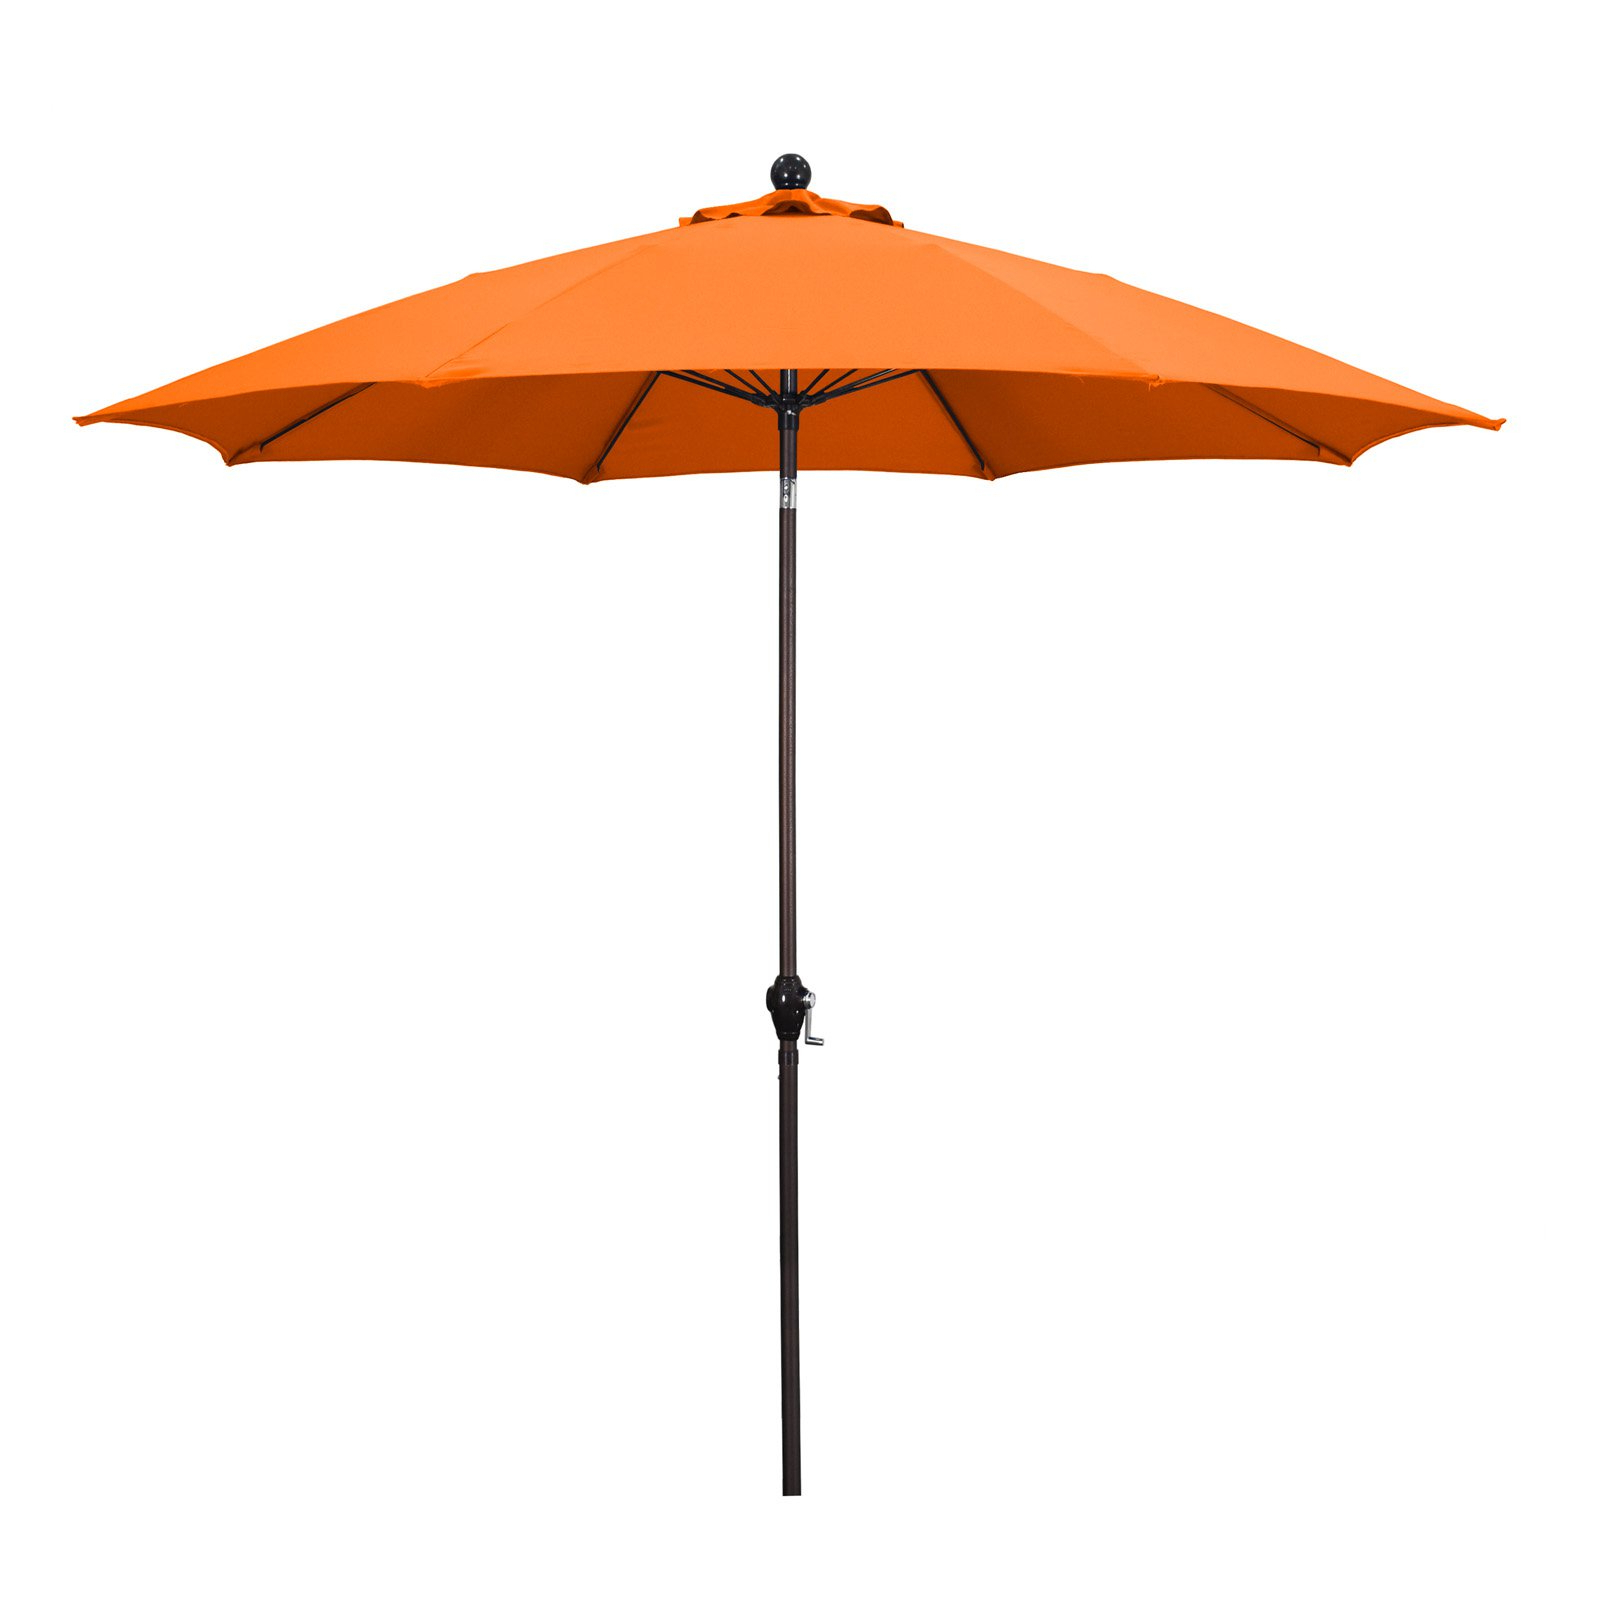 Sunline 9' Patio Market Umbrella In Polyester With Bronze Aluminum Pole  Fiberglass Ribs 3 Way Tilt Crank Lift With Regard To Well Known Market Umbrellas (View 18 of 20)